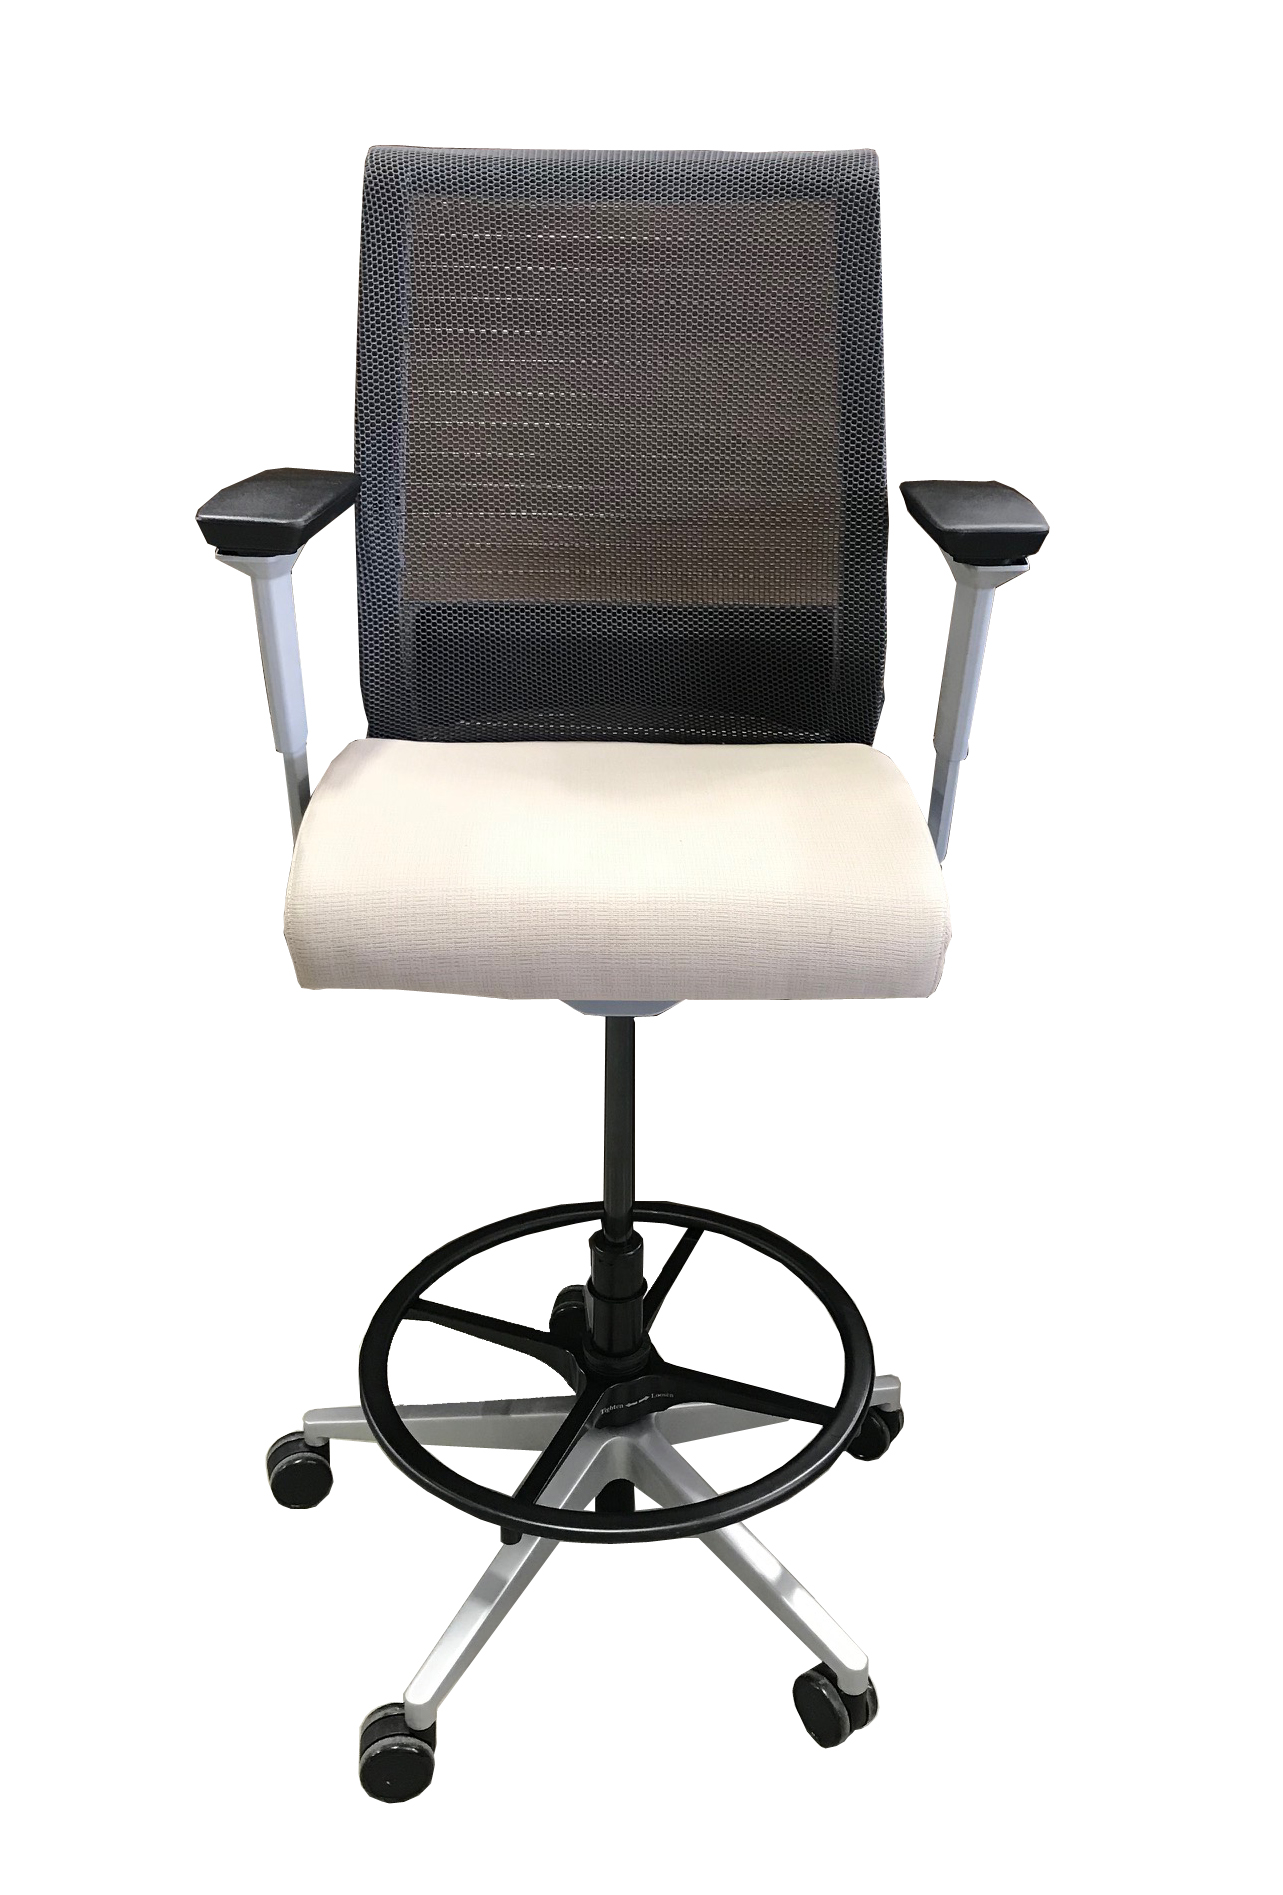 drafting office chair steel easy online used furniture think stool by steelcase